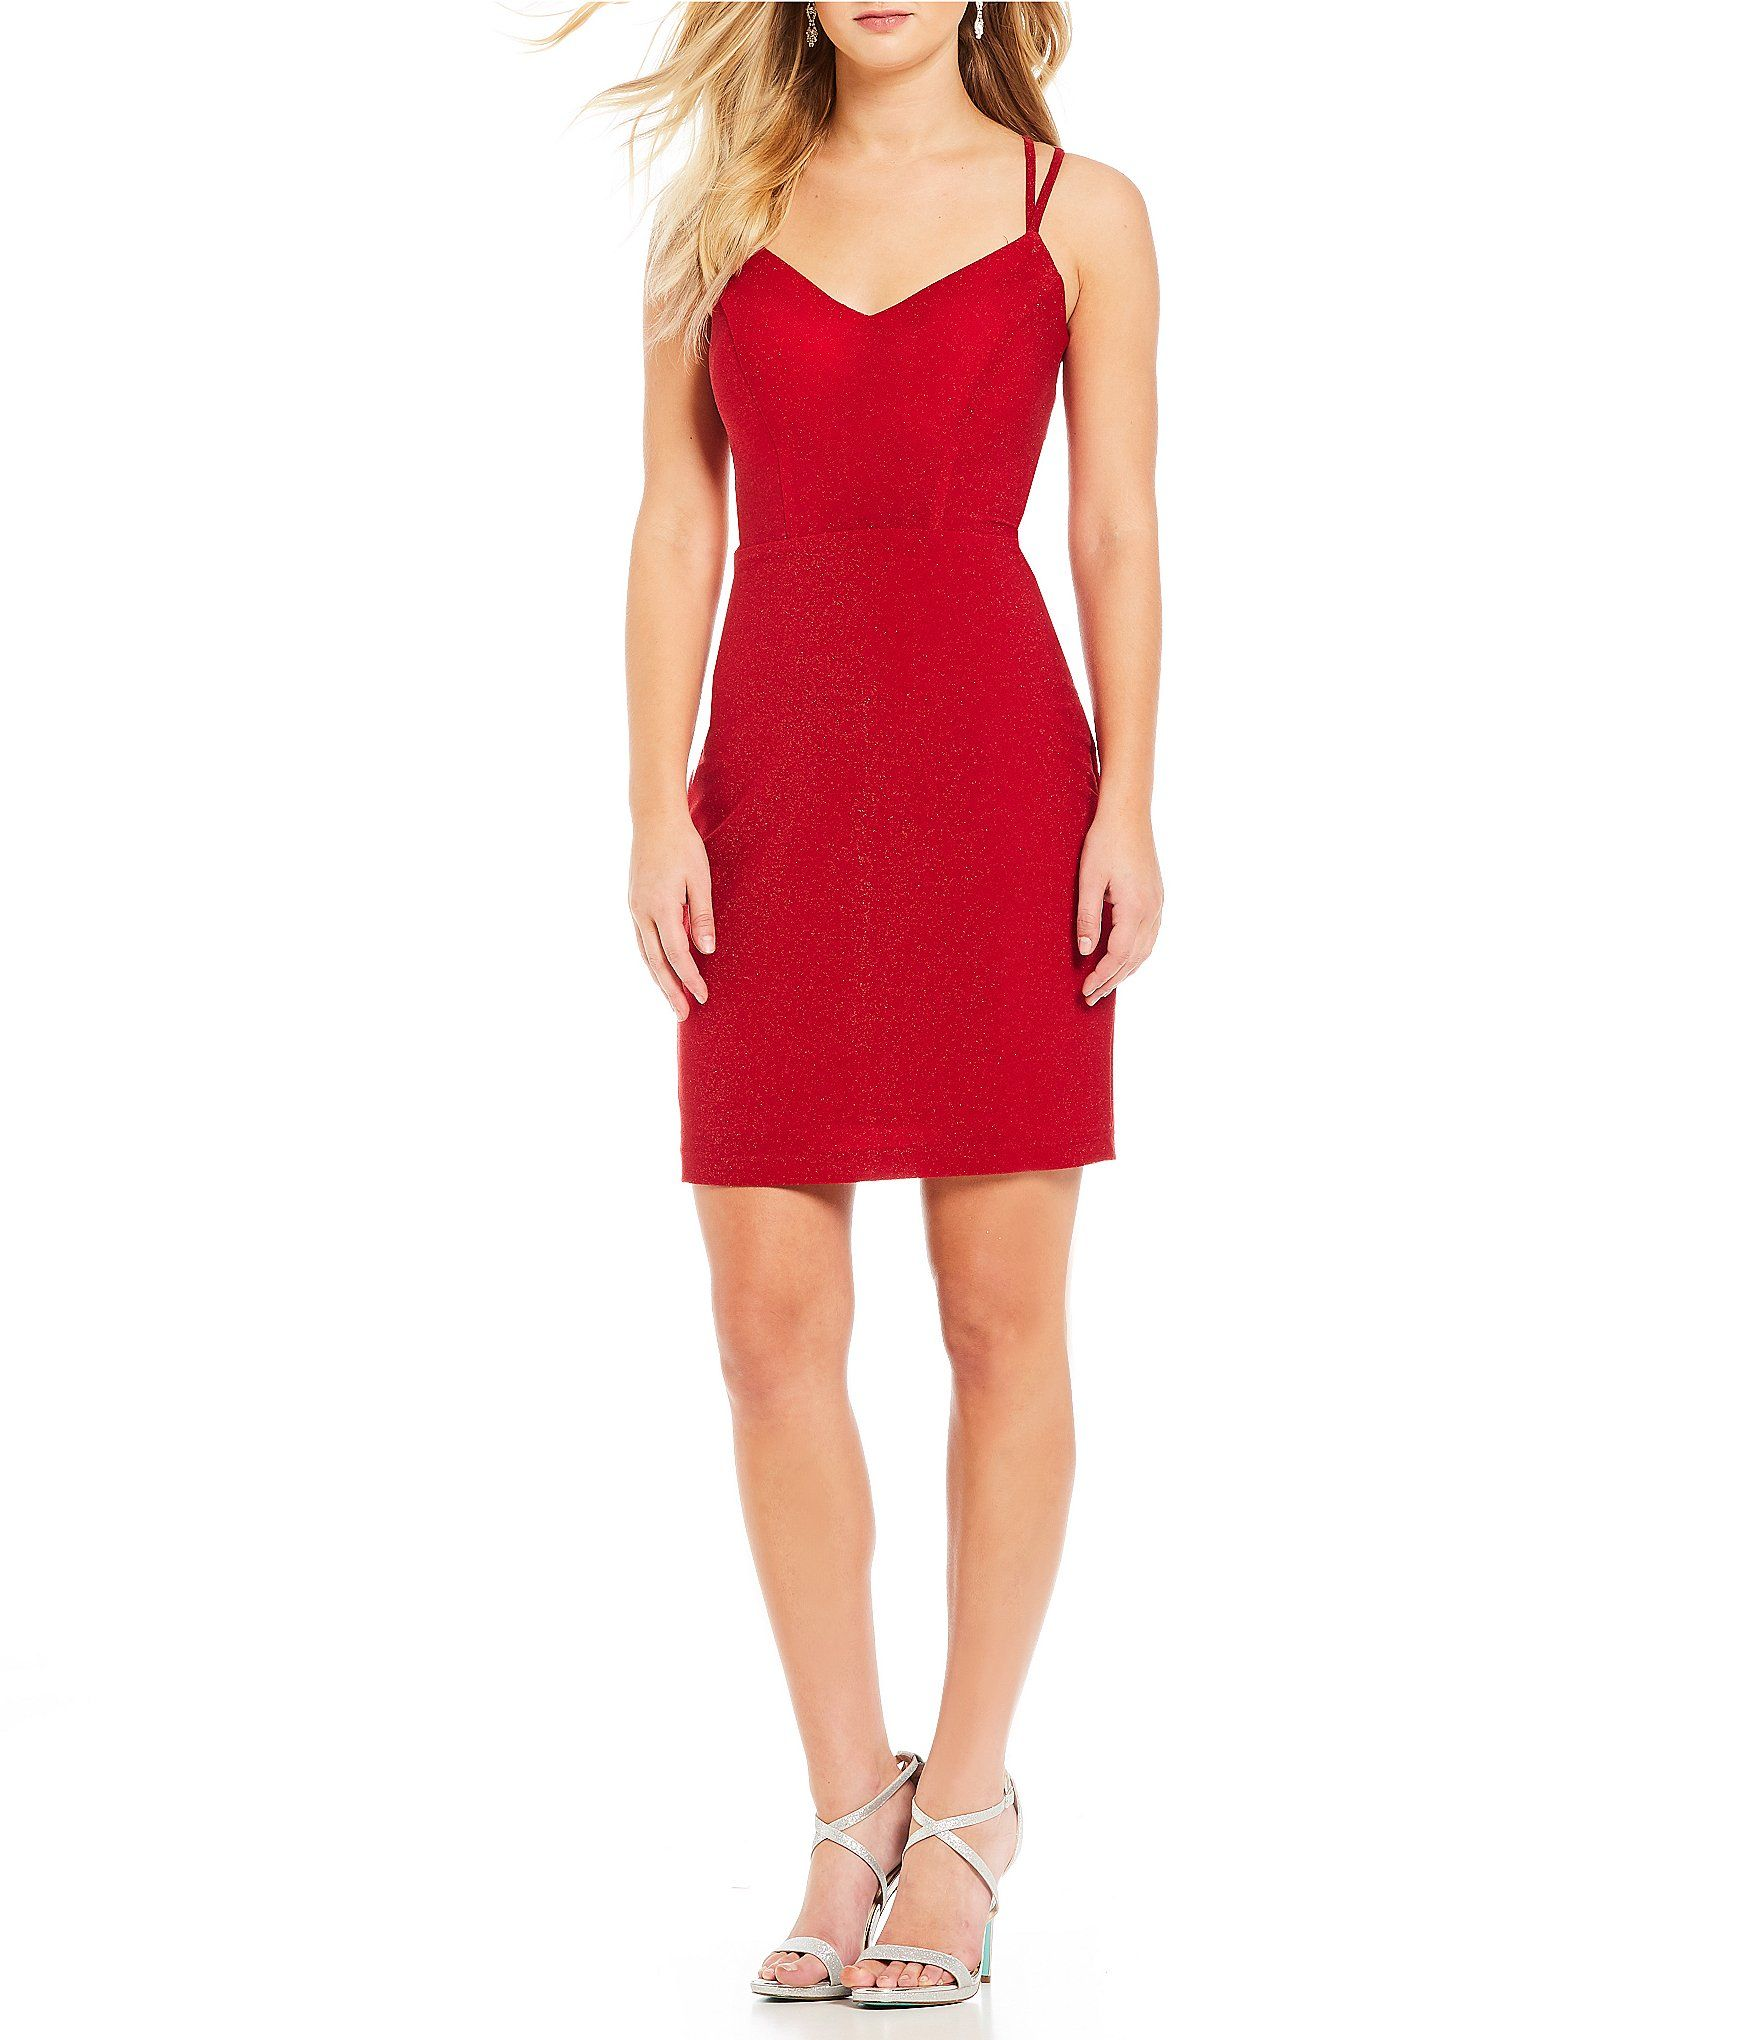 23ba1327ce4 Shop for Morgan   Co. Glitter-Knit Strappy Back Bodycon Dress at Dillards.com.  Visit Dillards.com to find clothing